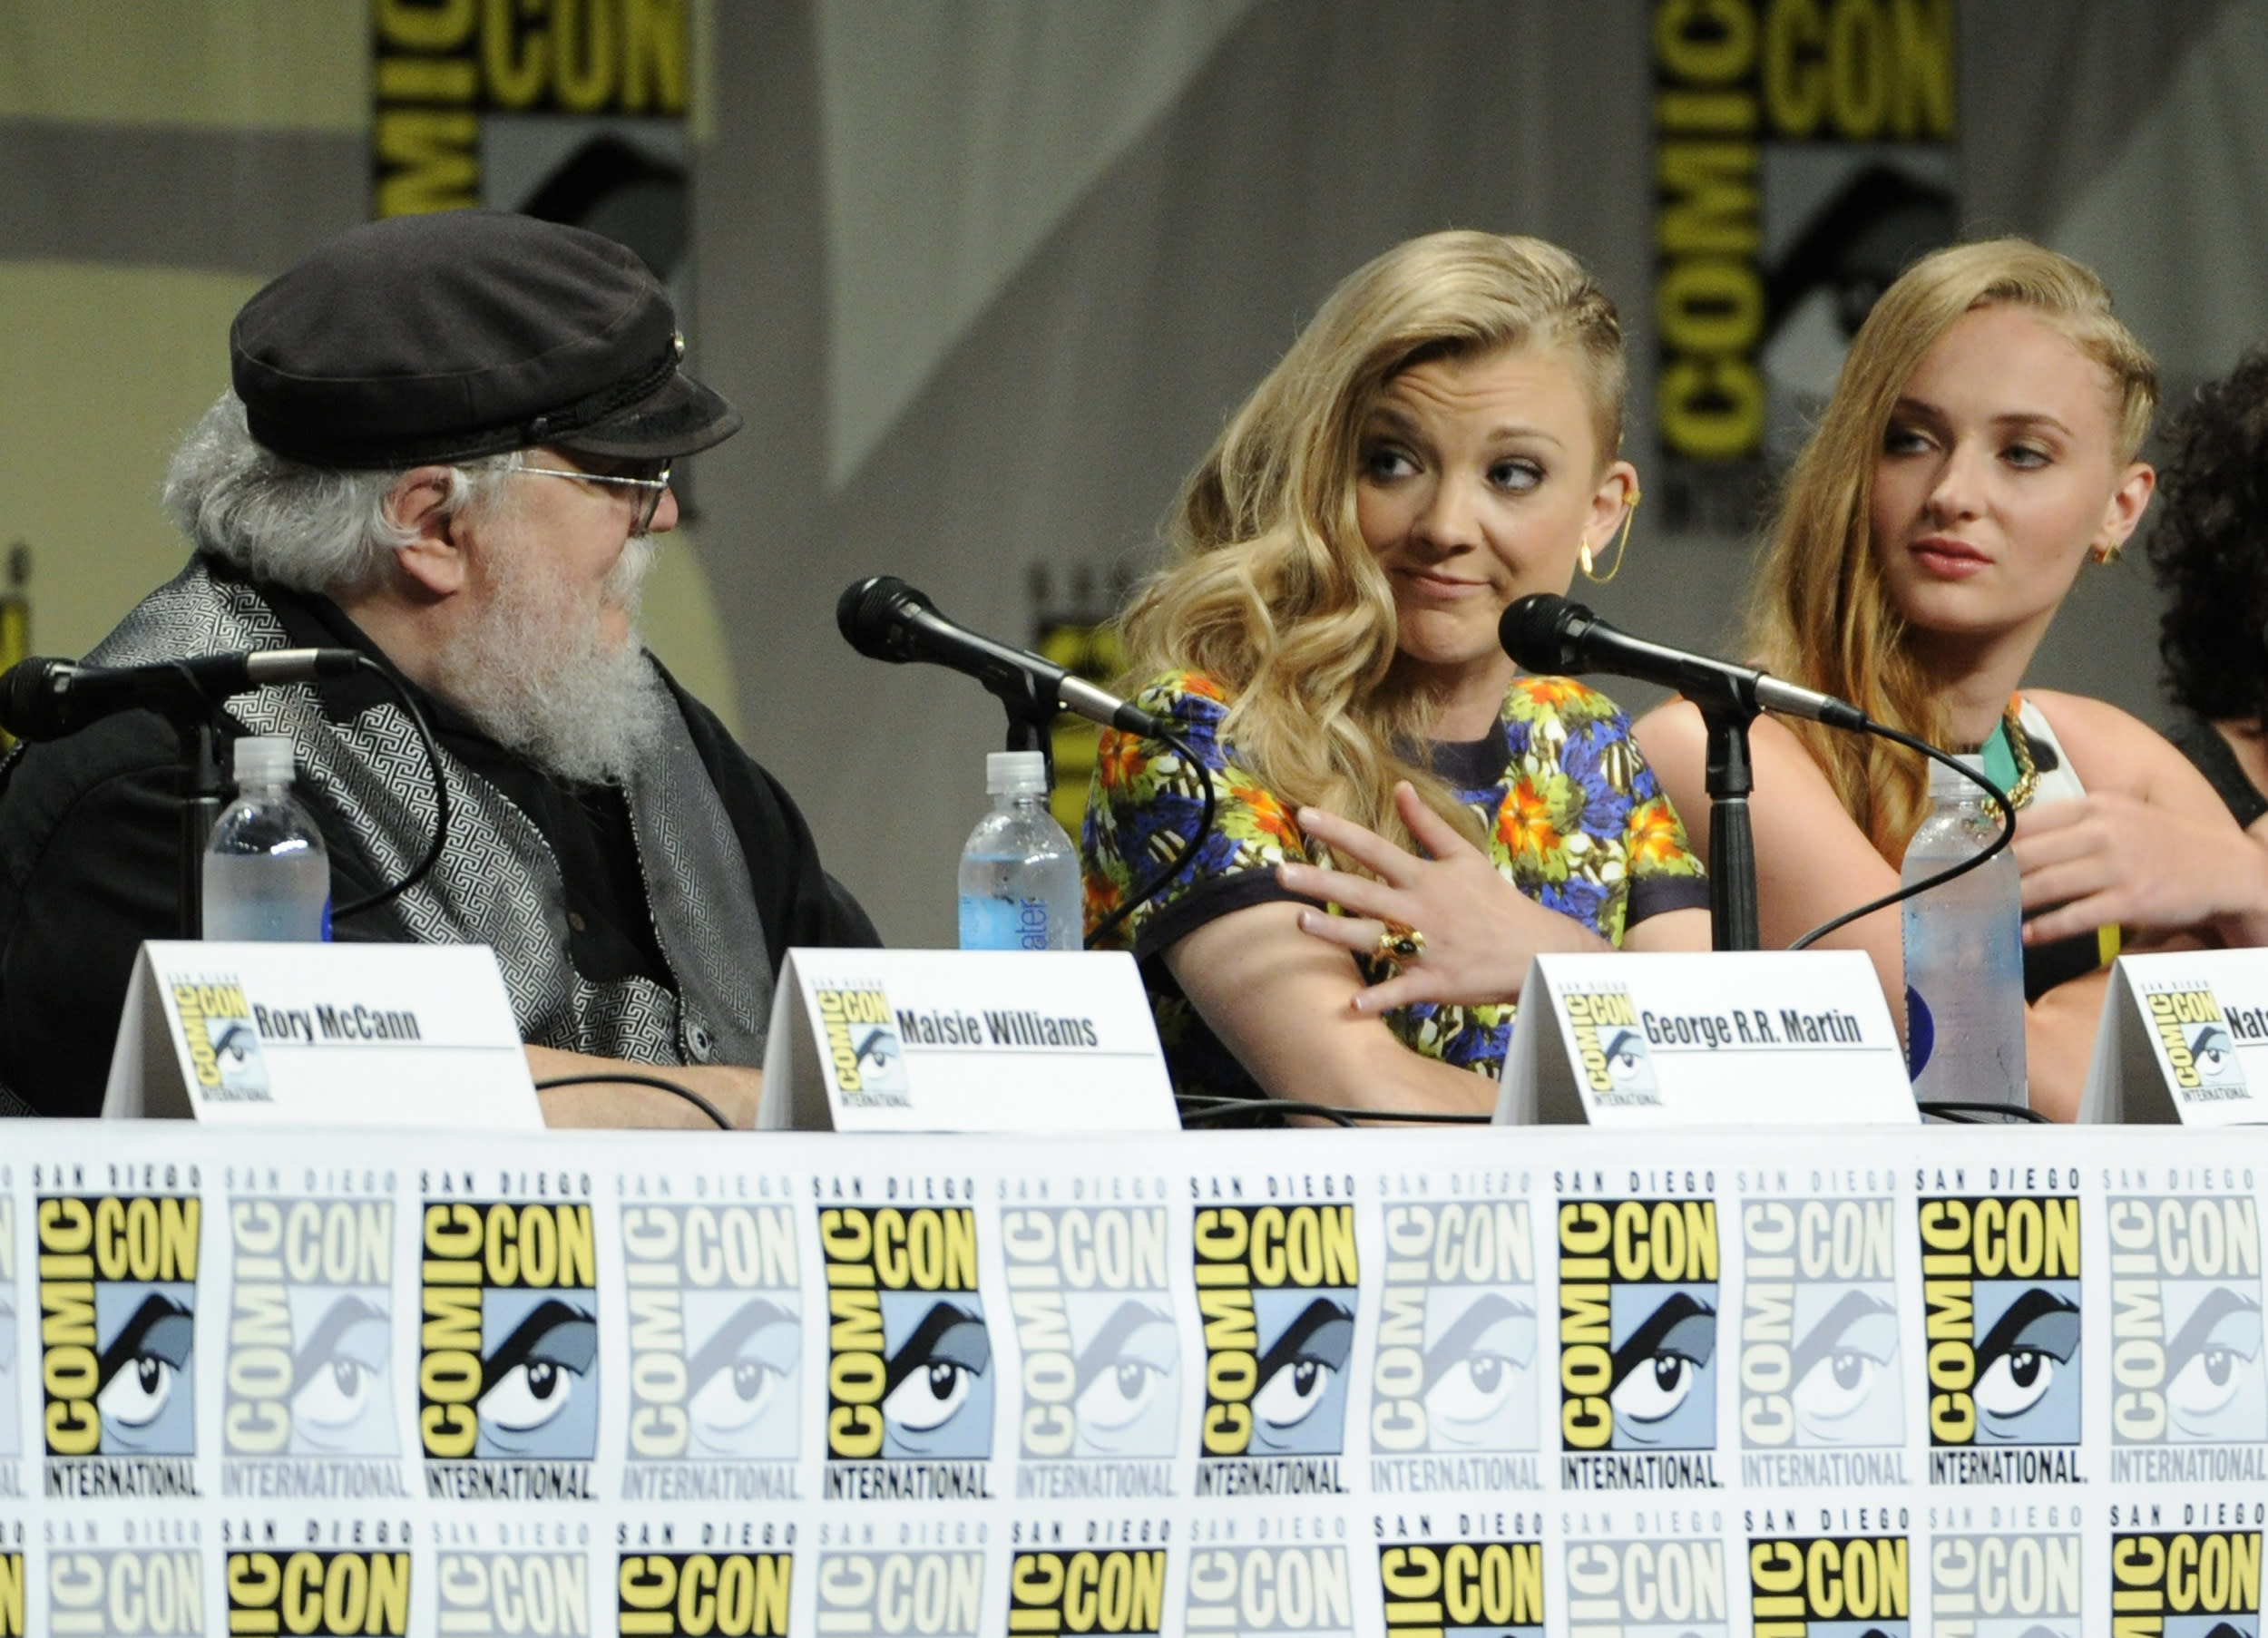 """George R.R. Martin, and from left, Natalie Dormer and Sophie Turner attend the """"Game of Thrones"""" panel on Day 2 of Comic-Con International on Friday, July 25, 2014, in San Diego. (Photo by Chris Pizzello/Invision/AP)"""